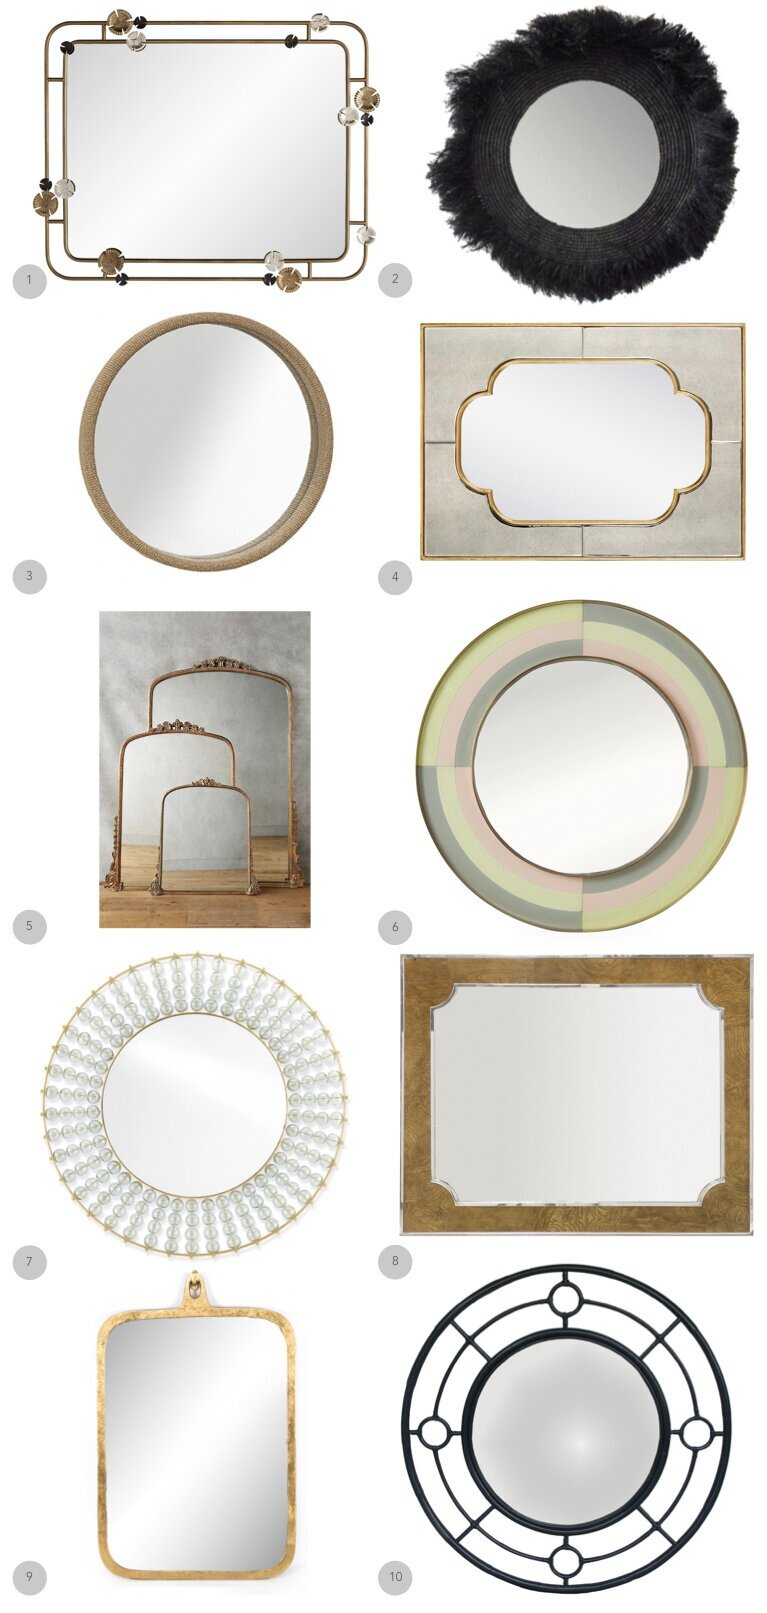 1.  Arteriors  2.  Celadon  3.  Brownstone Furniture  4.  Bungalow 5  5.  Athropologie  6.  Jonathan Adler  7.  Currey + Company  8.  Bernhardt  9.  Four Hands  10.  Red Egg